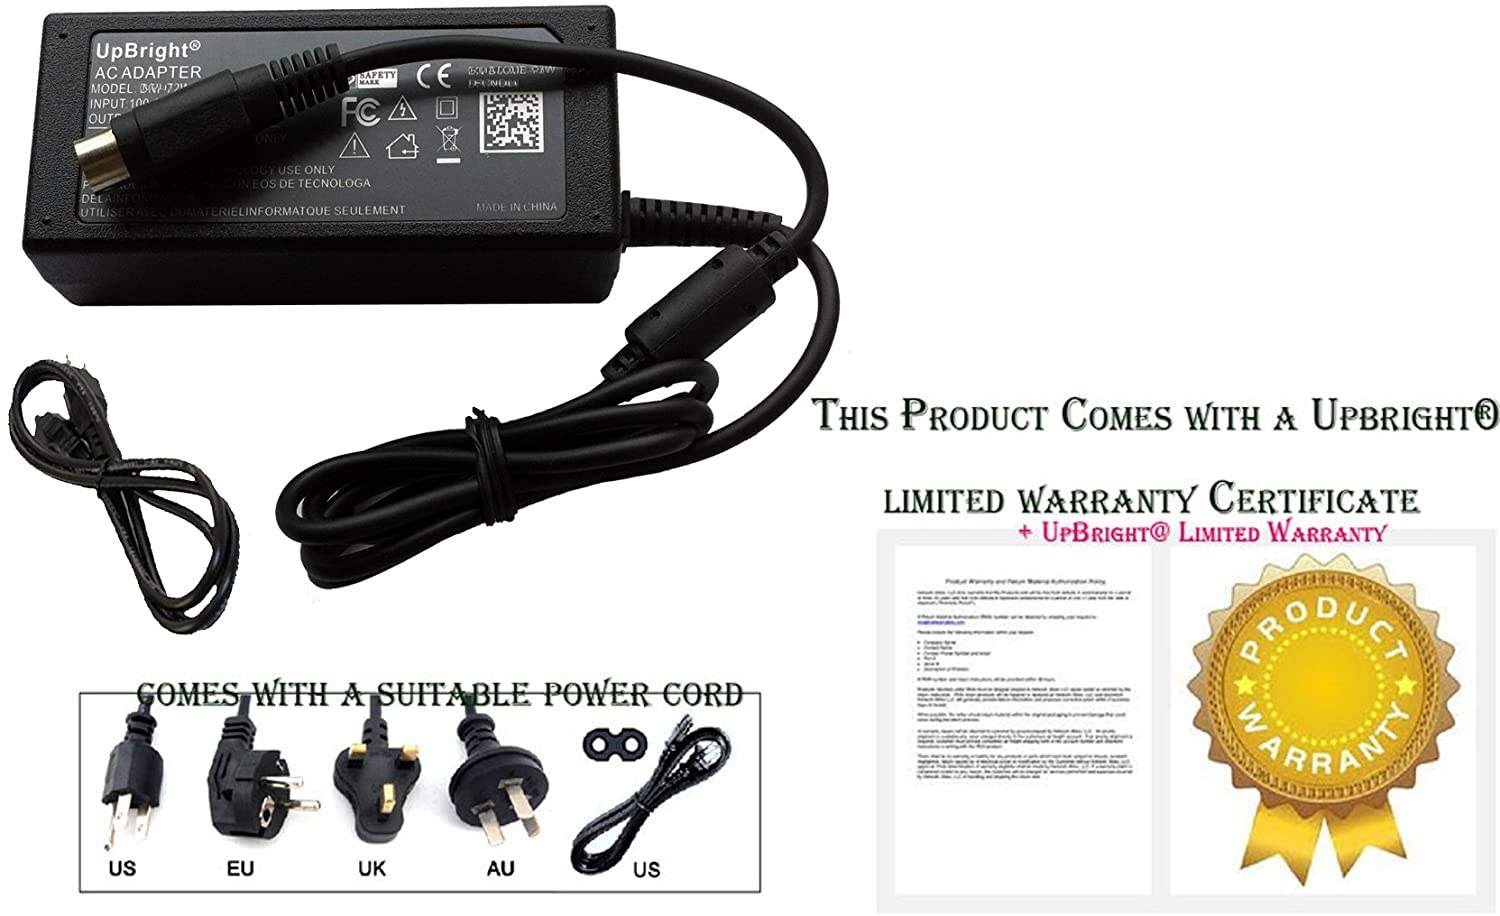 UPBRIGHT New AC/DC Adapter for EPSON C31C518653 TM-U220PD POS Printer Power Supply Cord Cable PS Charger Input: 100-240 VAC 50/60Hz Worldwide Voltage Use Mains PSU